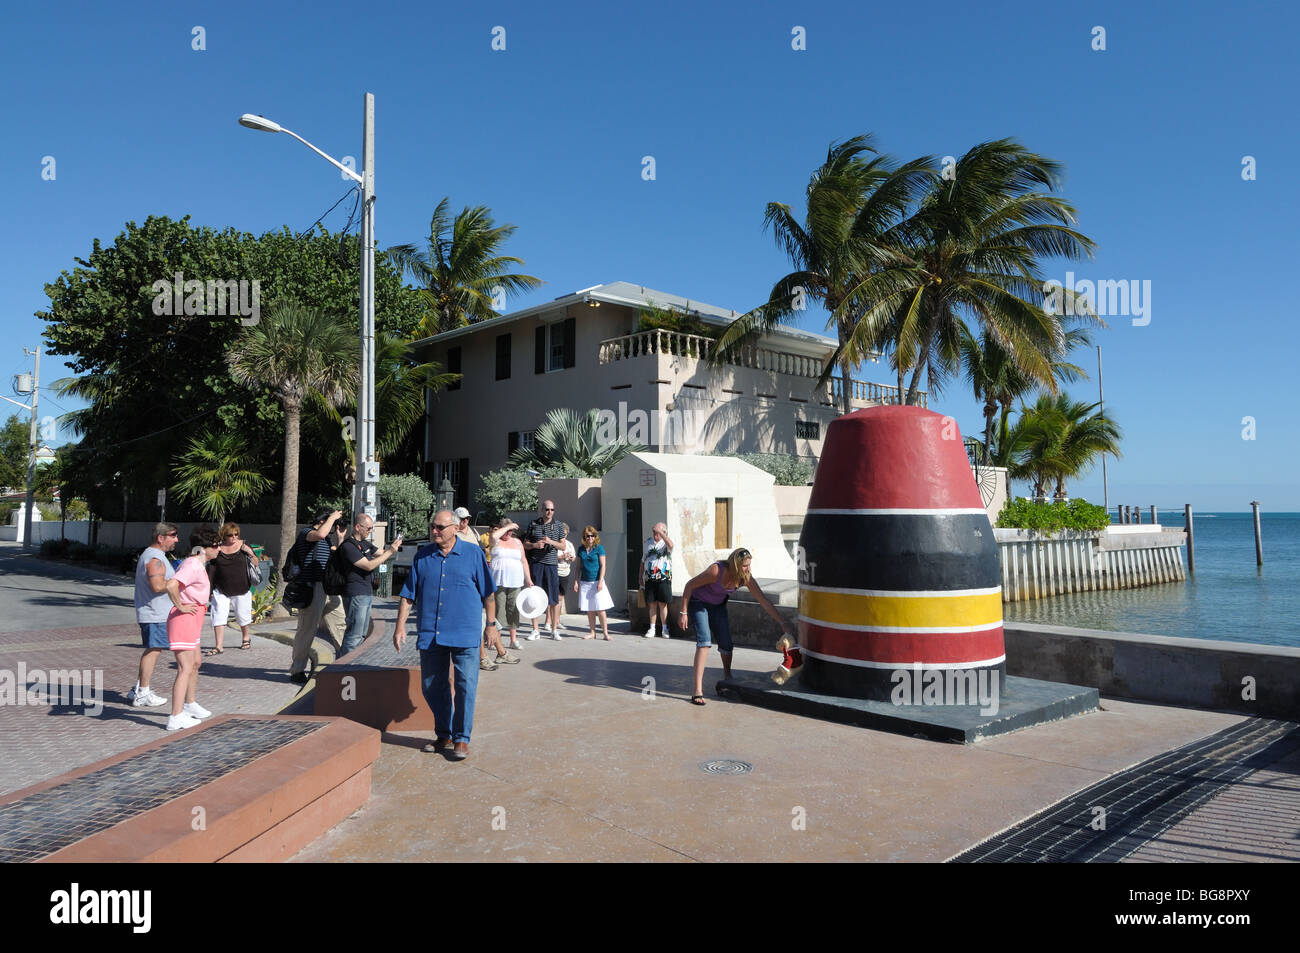 Southernmost point in continental USA, Key West, Florida Keys - Stock Image